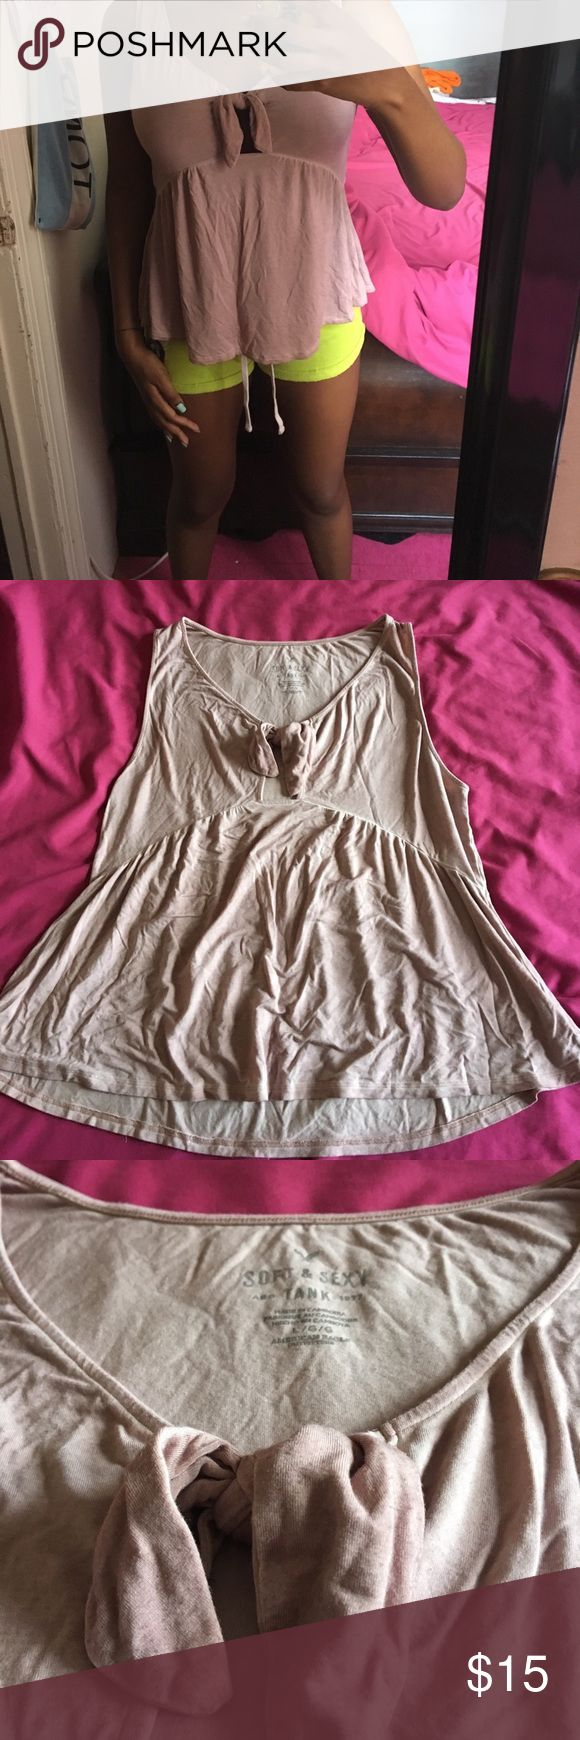 Dusty Mauve American Eagle Outfitters Bowtie Tank Brand new never worn American eagle bowtie tank top. A light mauve color . Was taken in natural light so it looks a lot lighter. In great condition! American Eagle Outfitters Tops Tank Tops